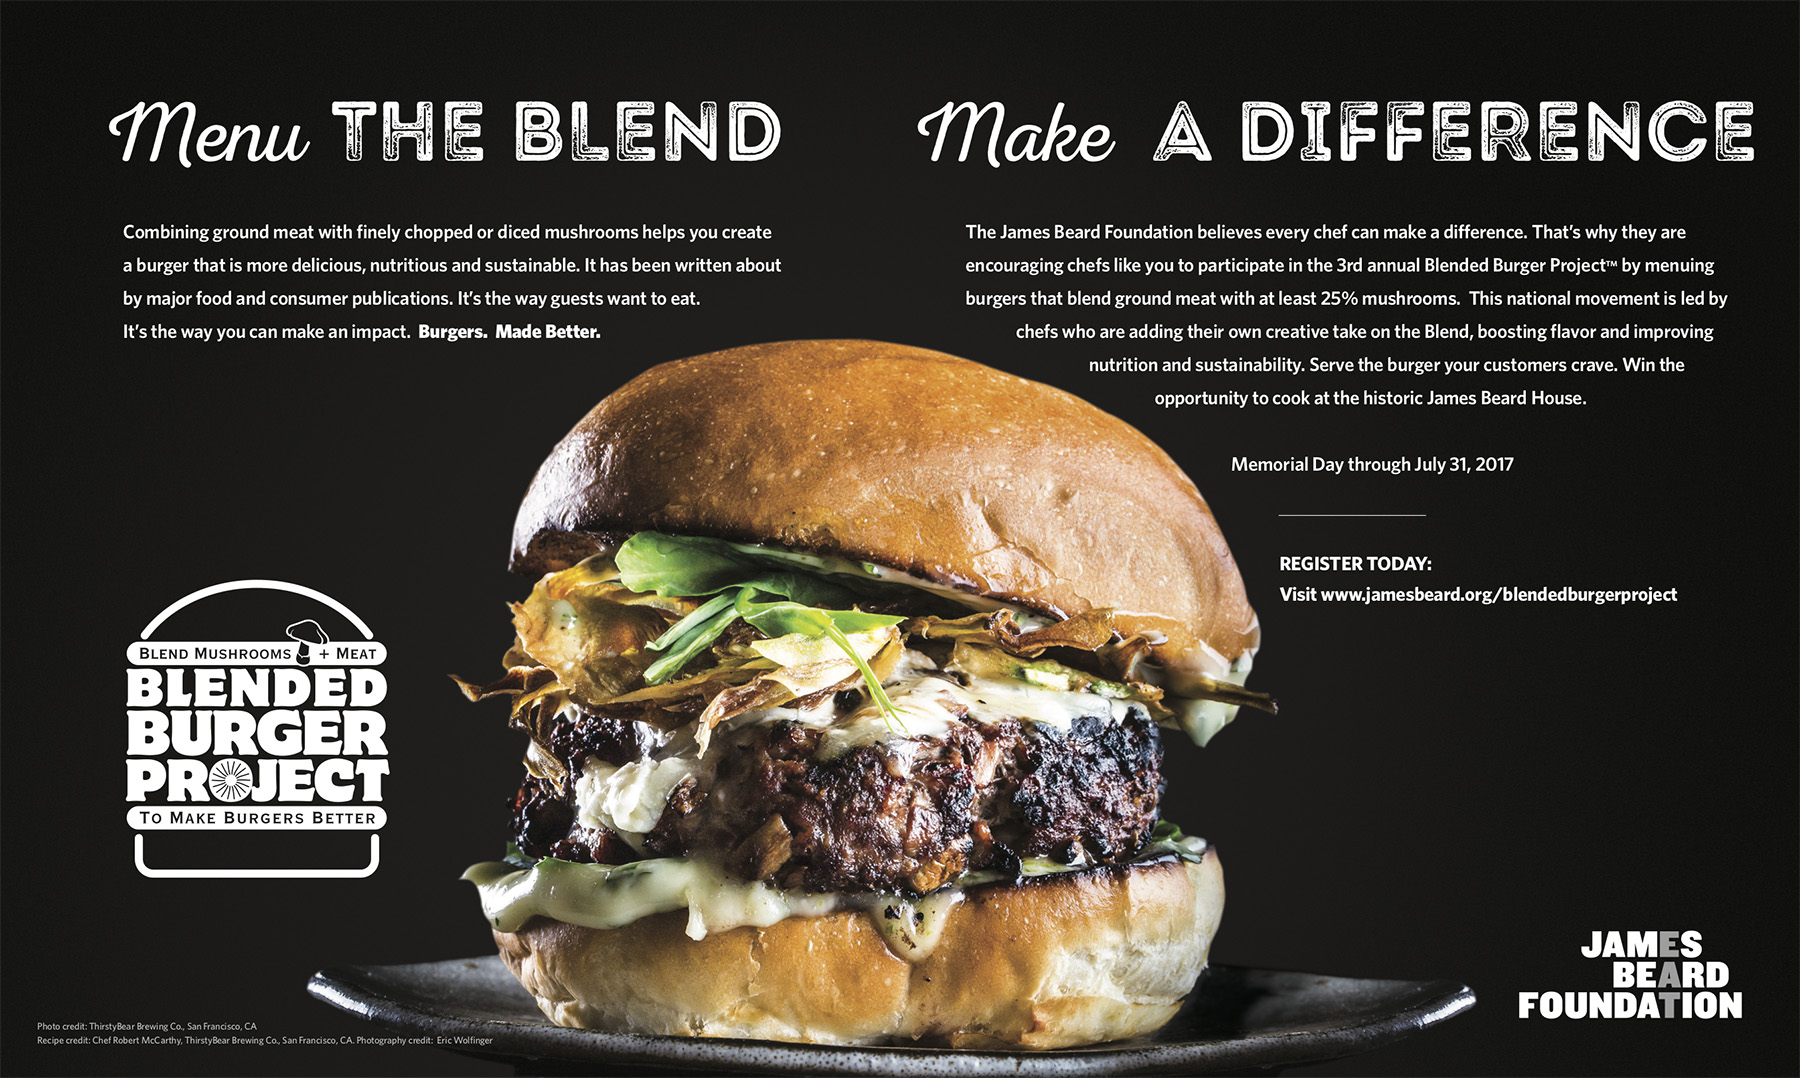 the blend poster advertisement